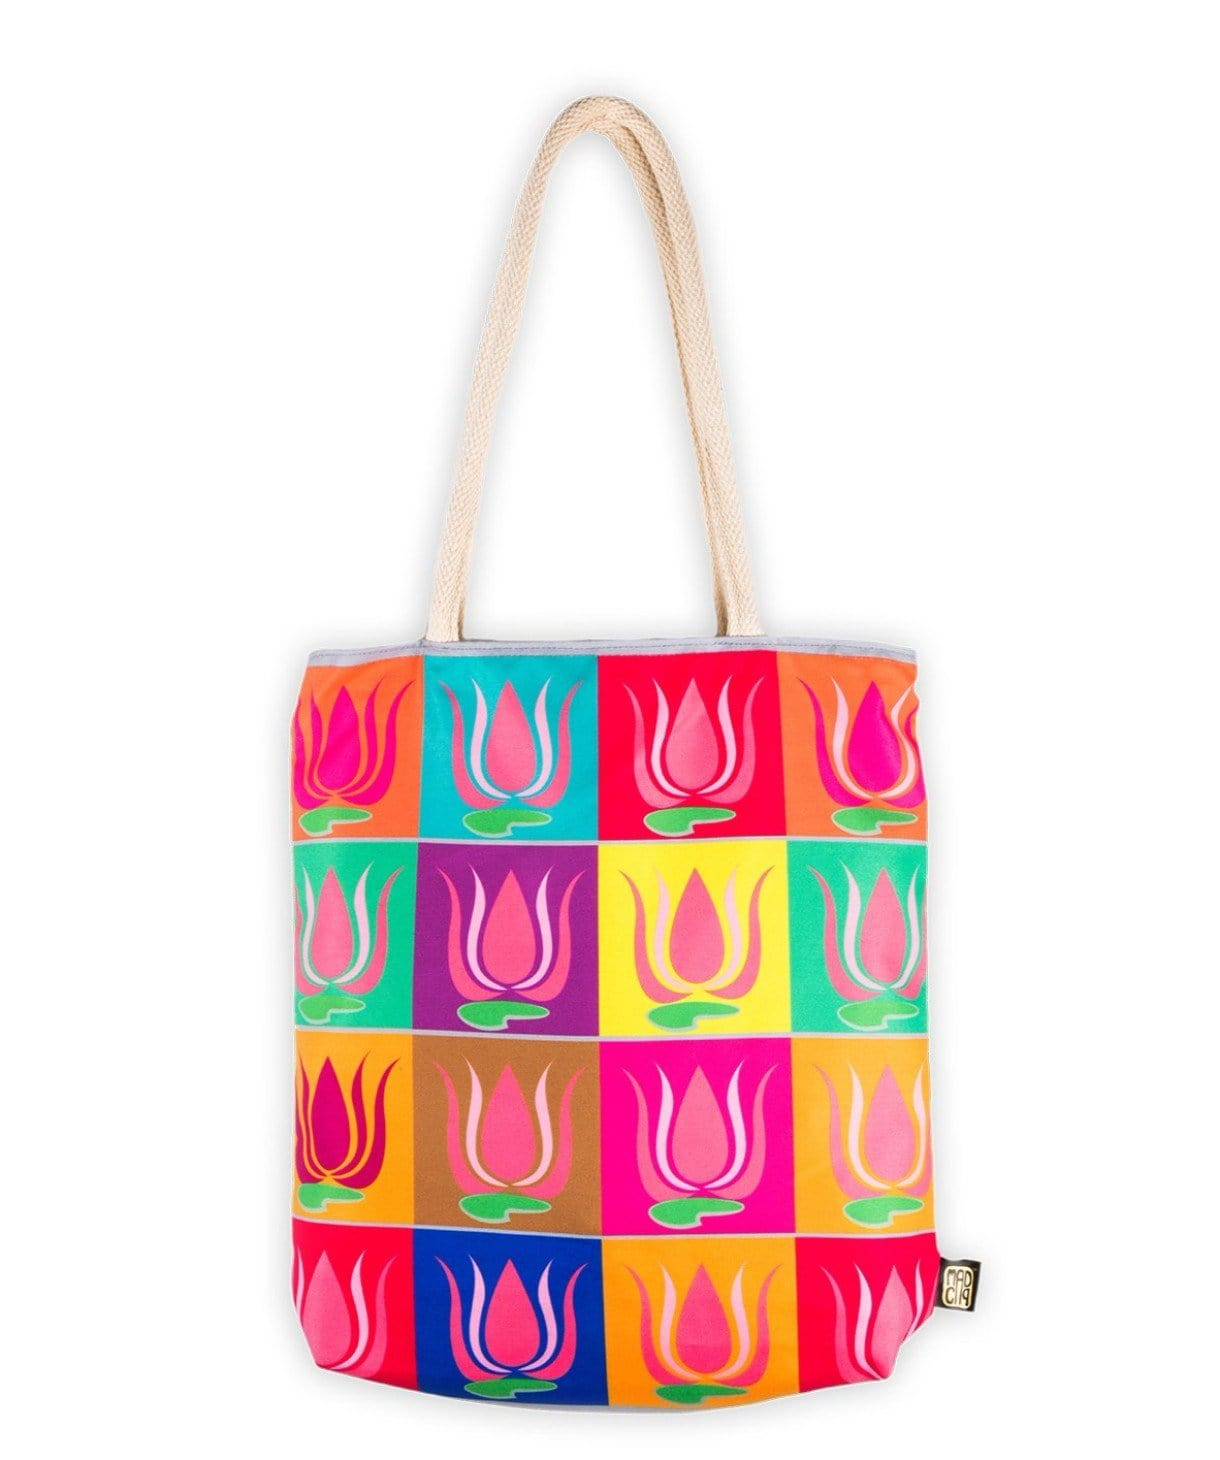 Traditional Tote Bag - Uptownie